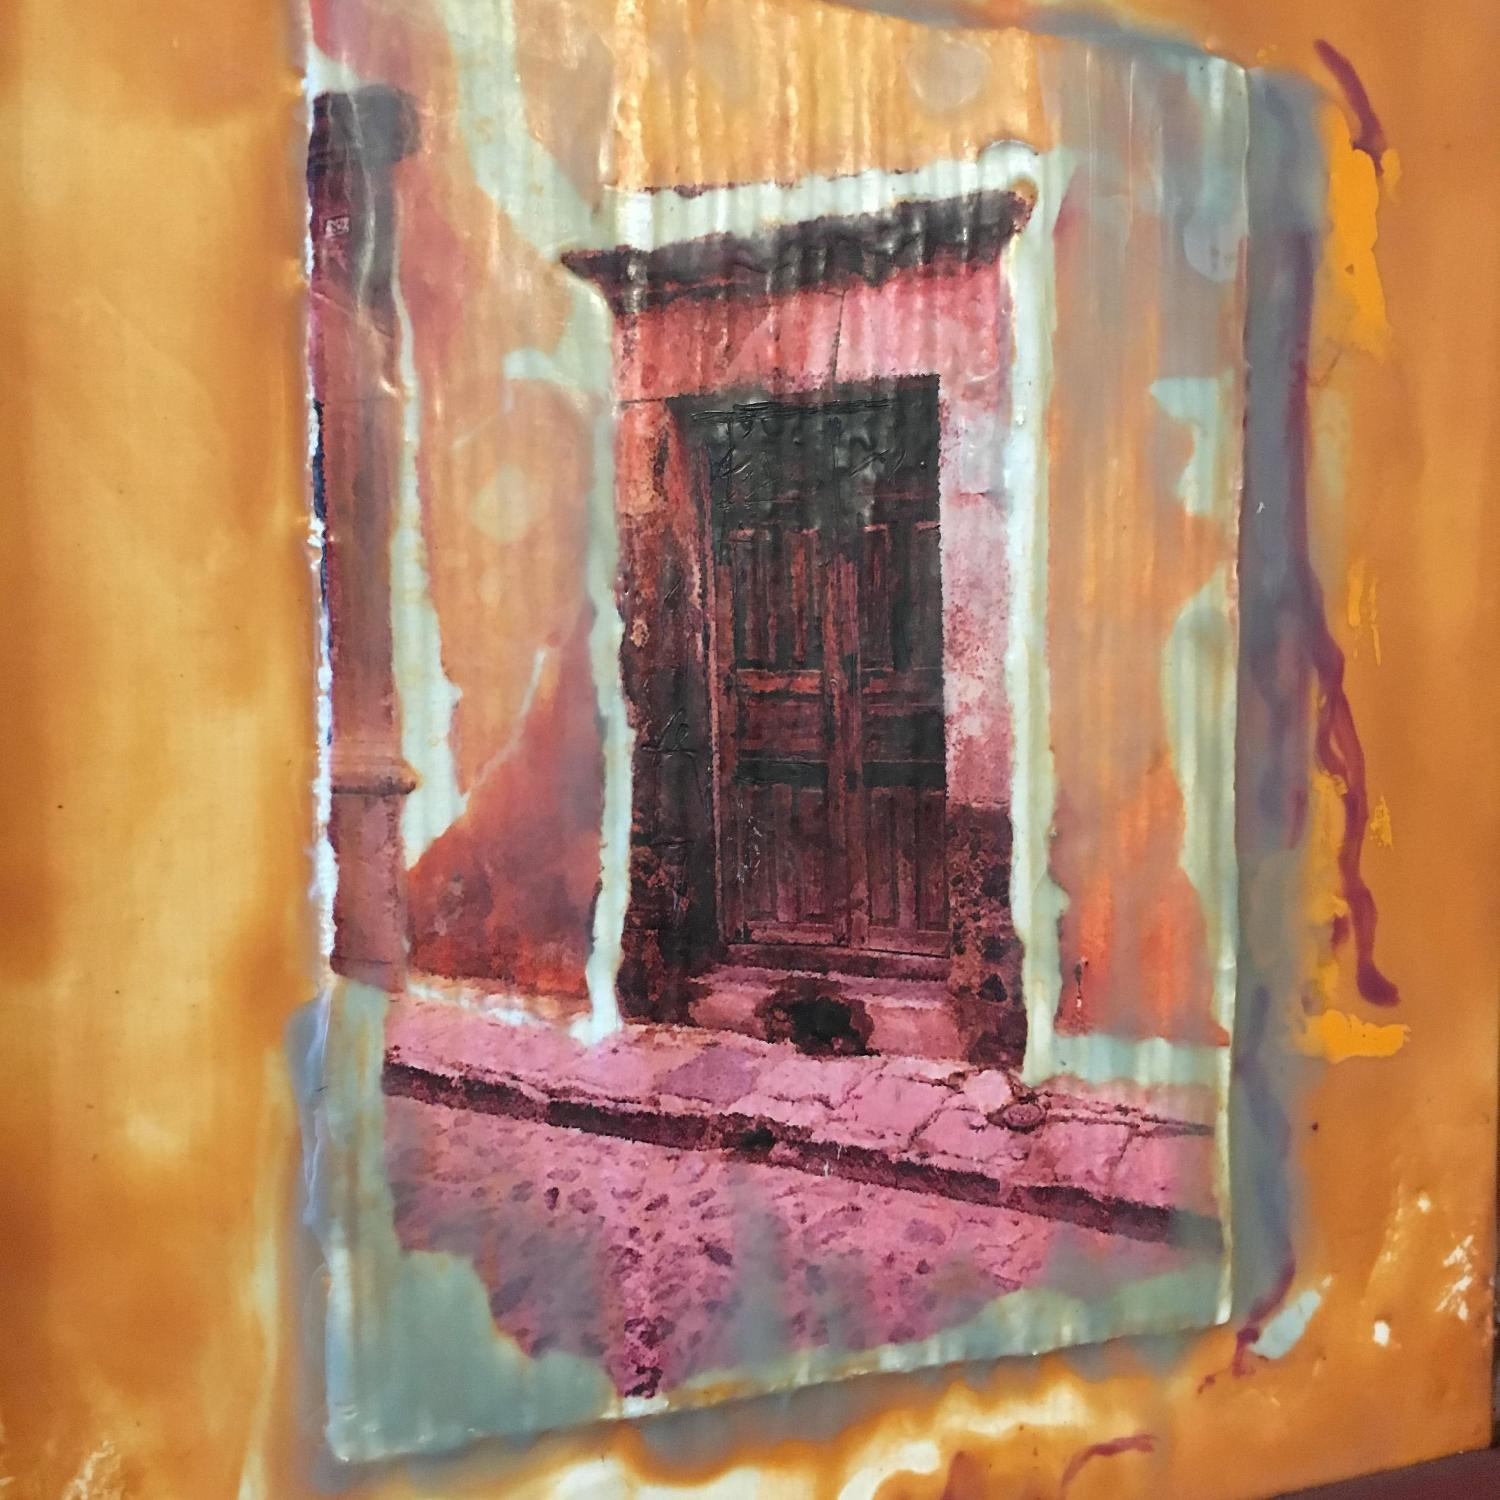 Calle Morada Collage Encaustic Beeswax - image-3